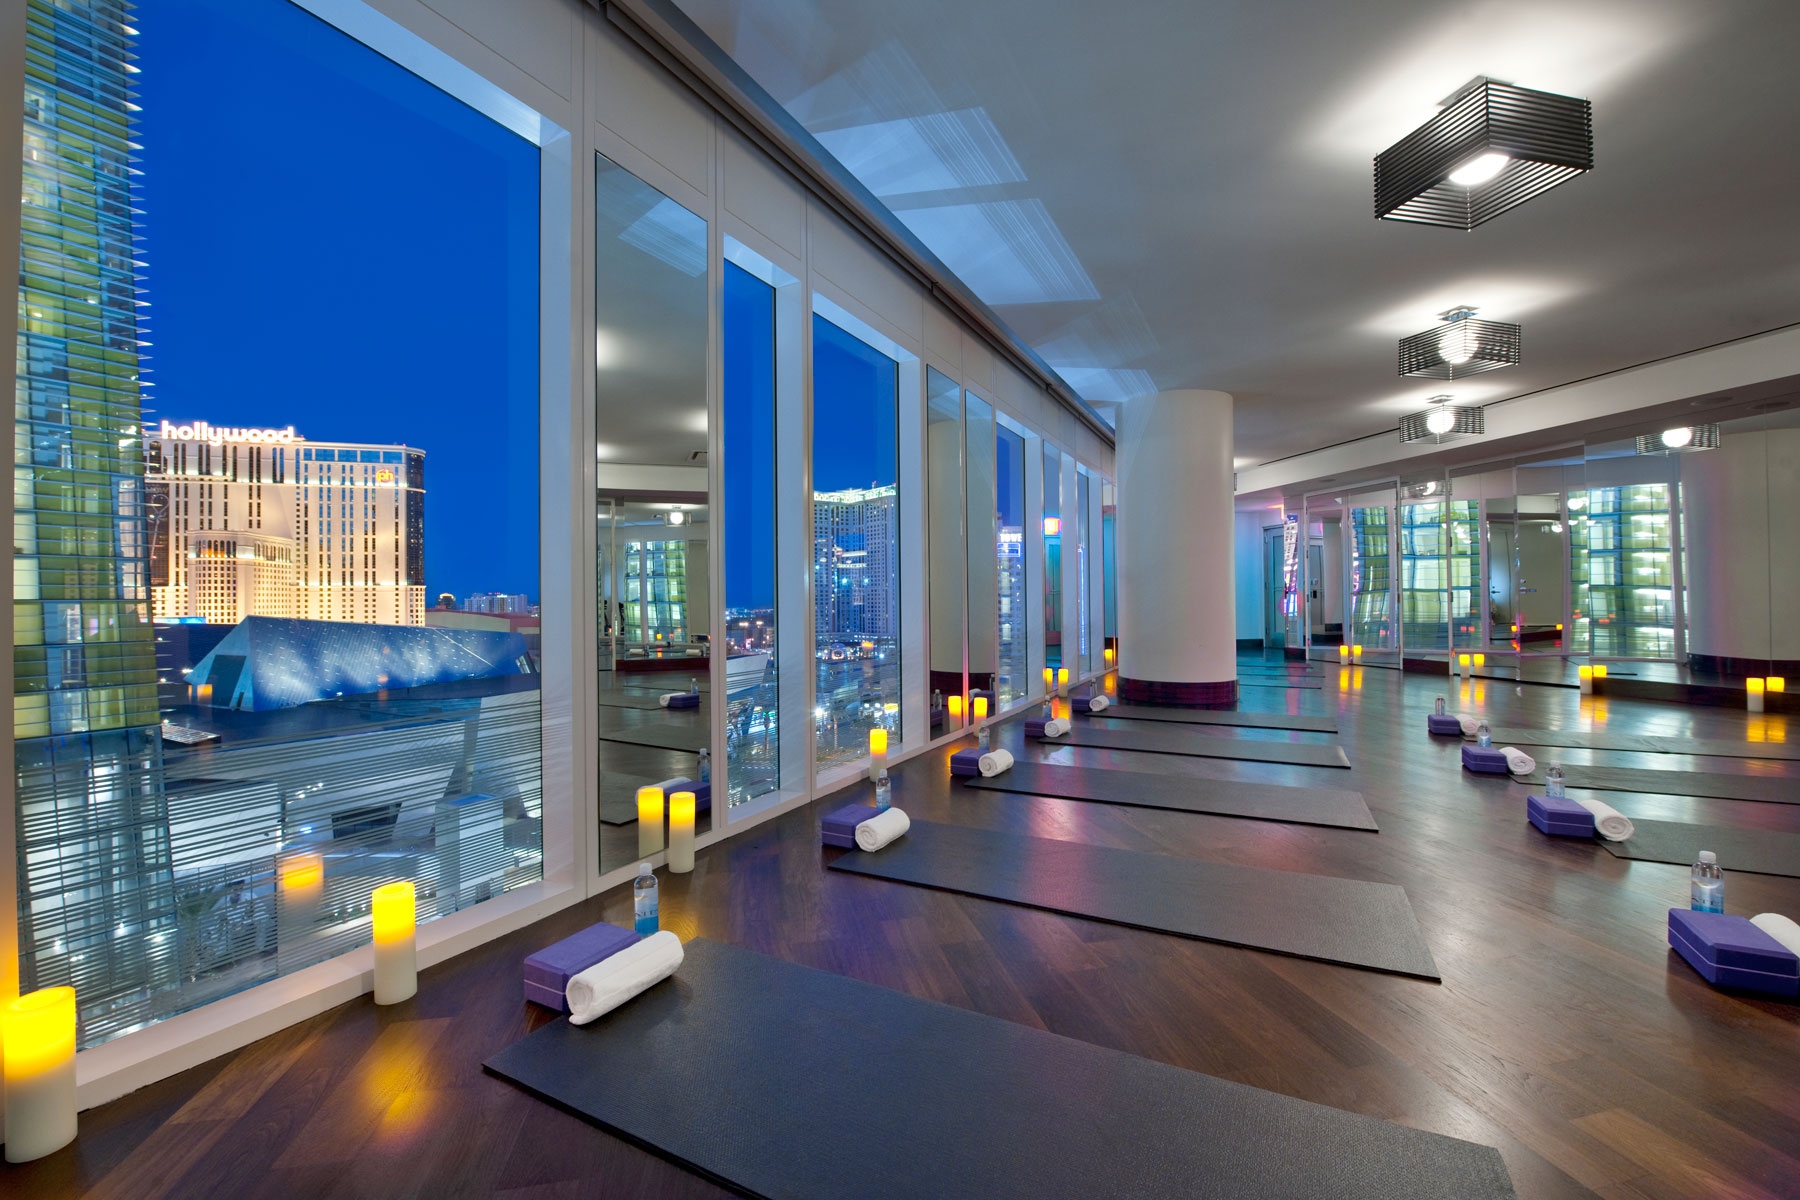 mandarin-oriental-fitness-and-wellness-center